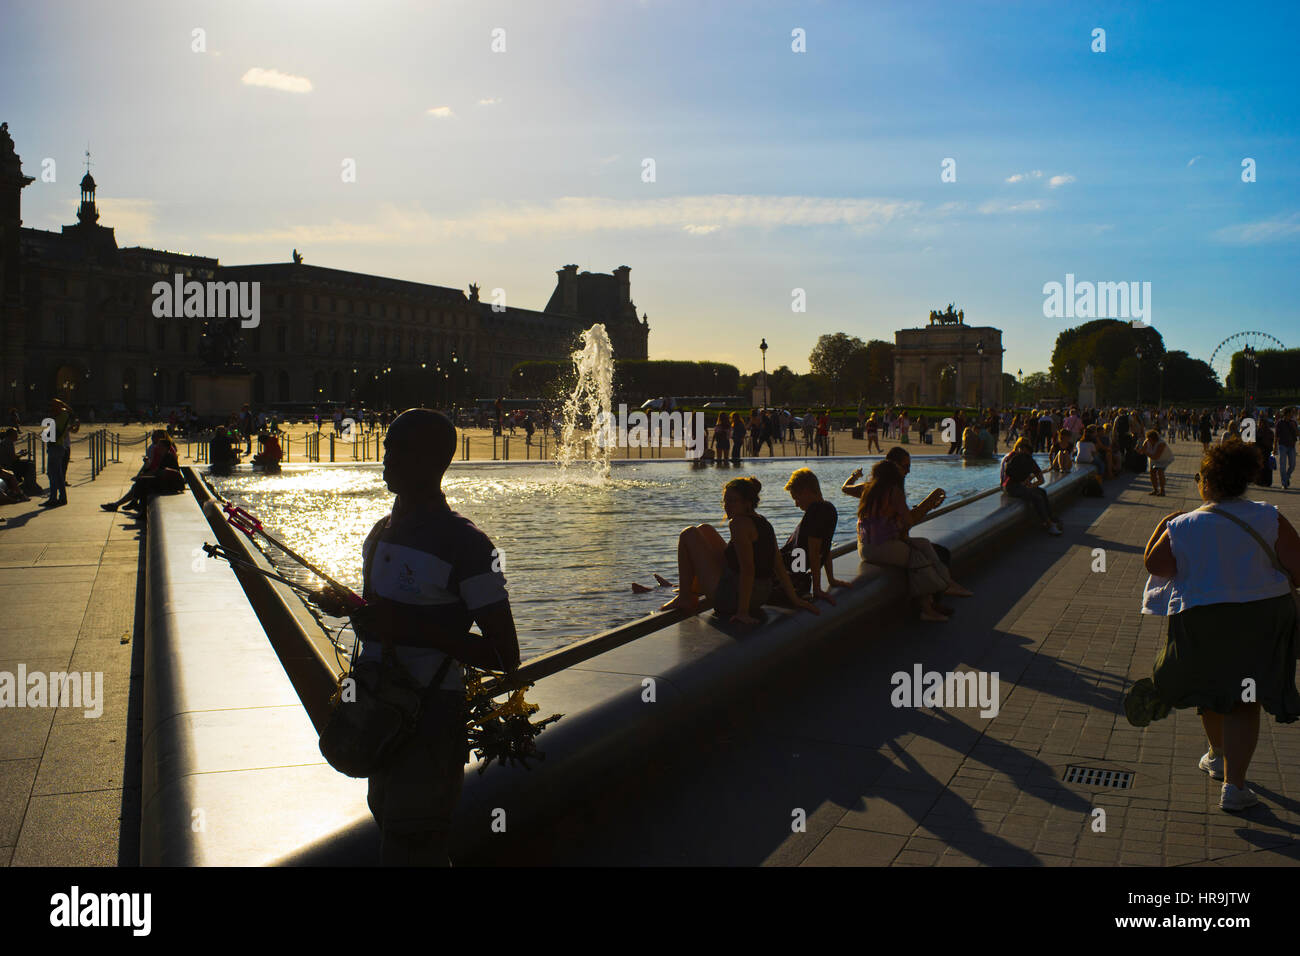 Louvre Place with tourists on a sunny afternoon - Stock Image